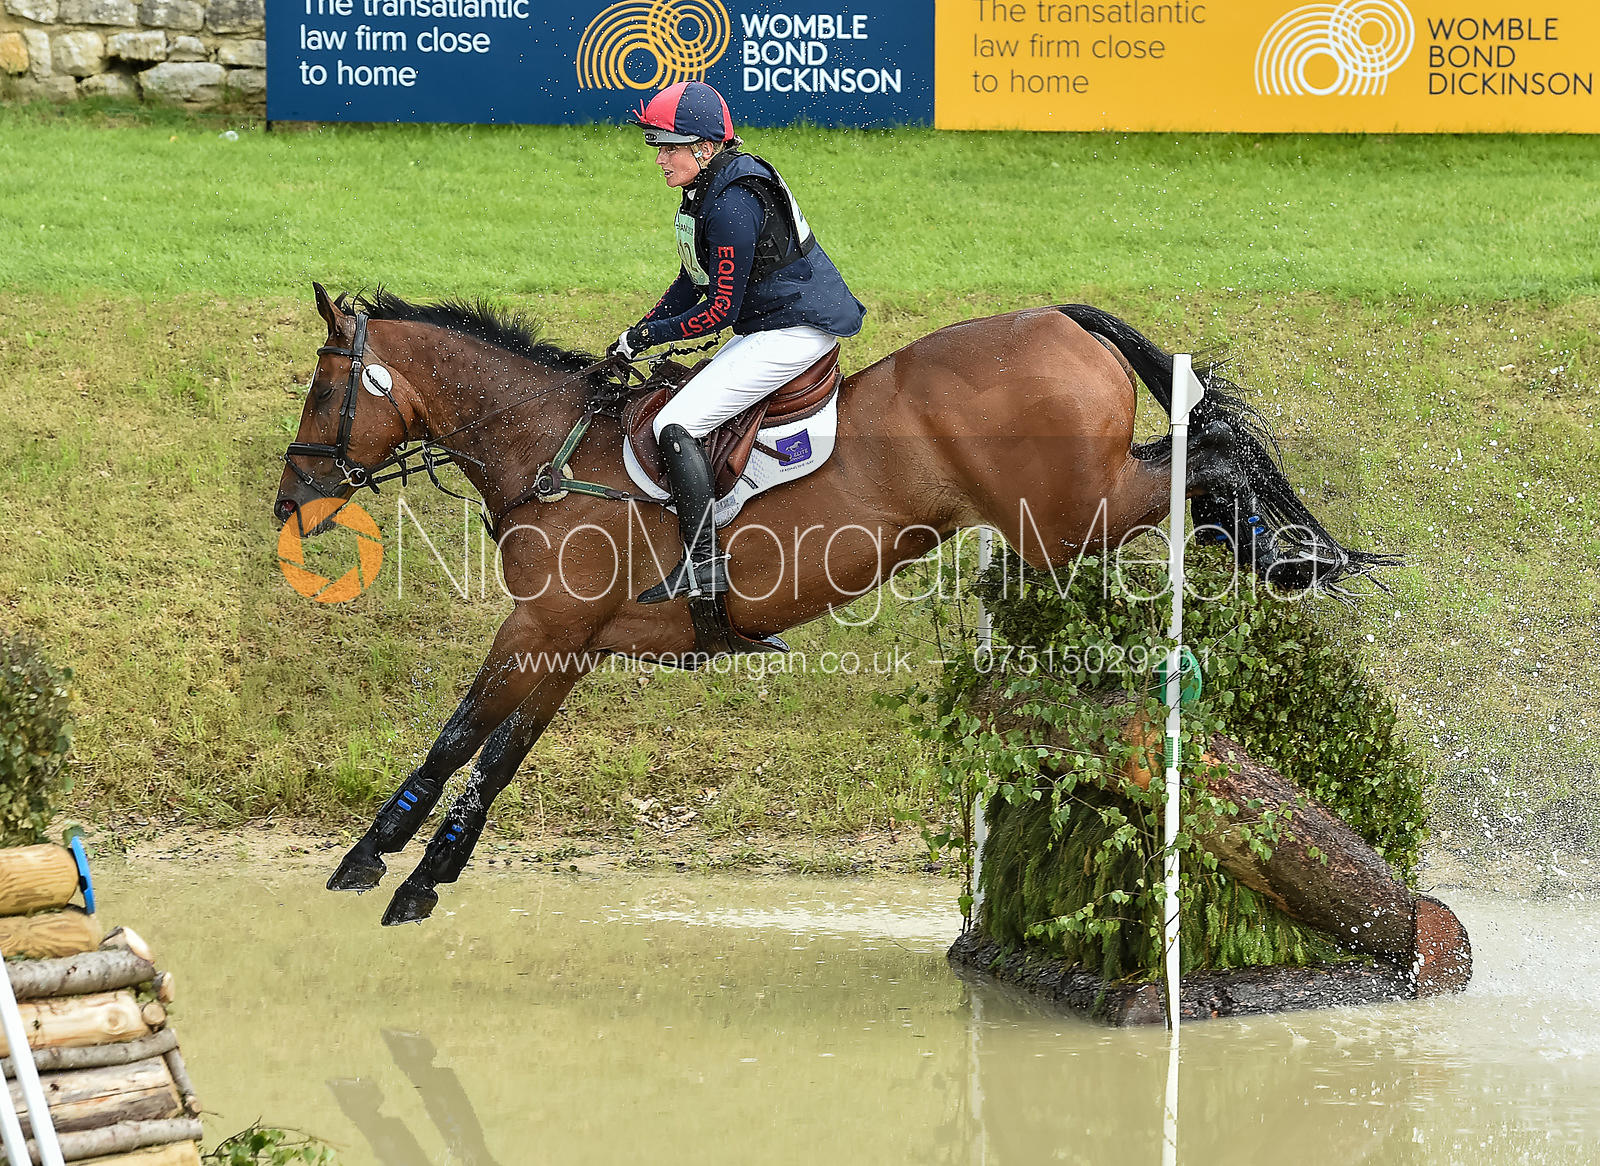 Rebecca Gibbs and DE BEERS DILLETANTE, Equitrek Bramham Horse Trials 2018